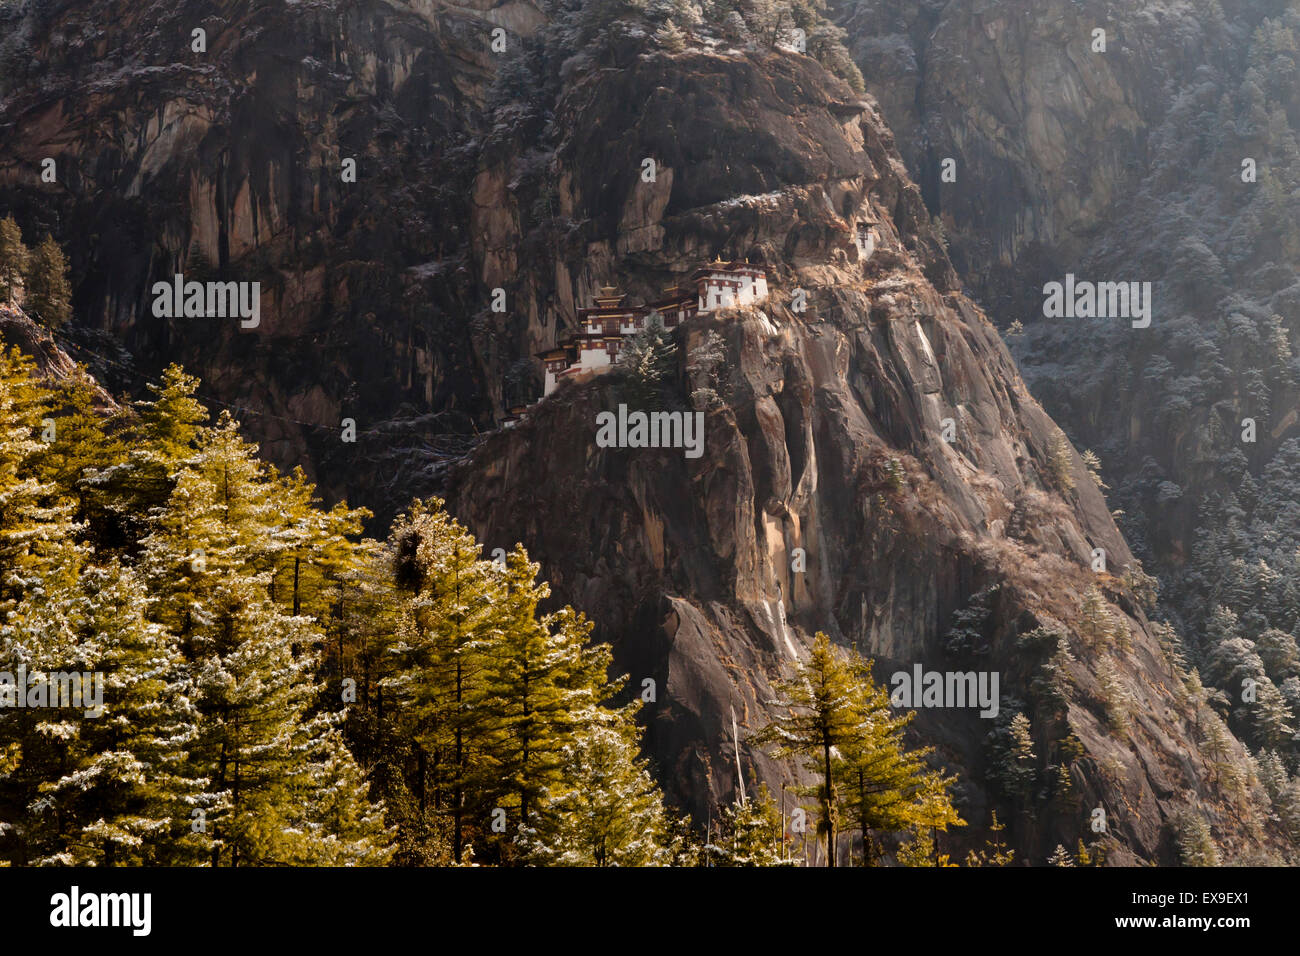 Cliff of Taktsang Monastery (Tiger's Nest) - Bhutan - Stock Image